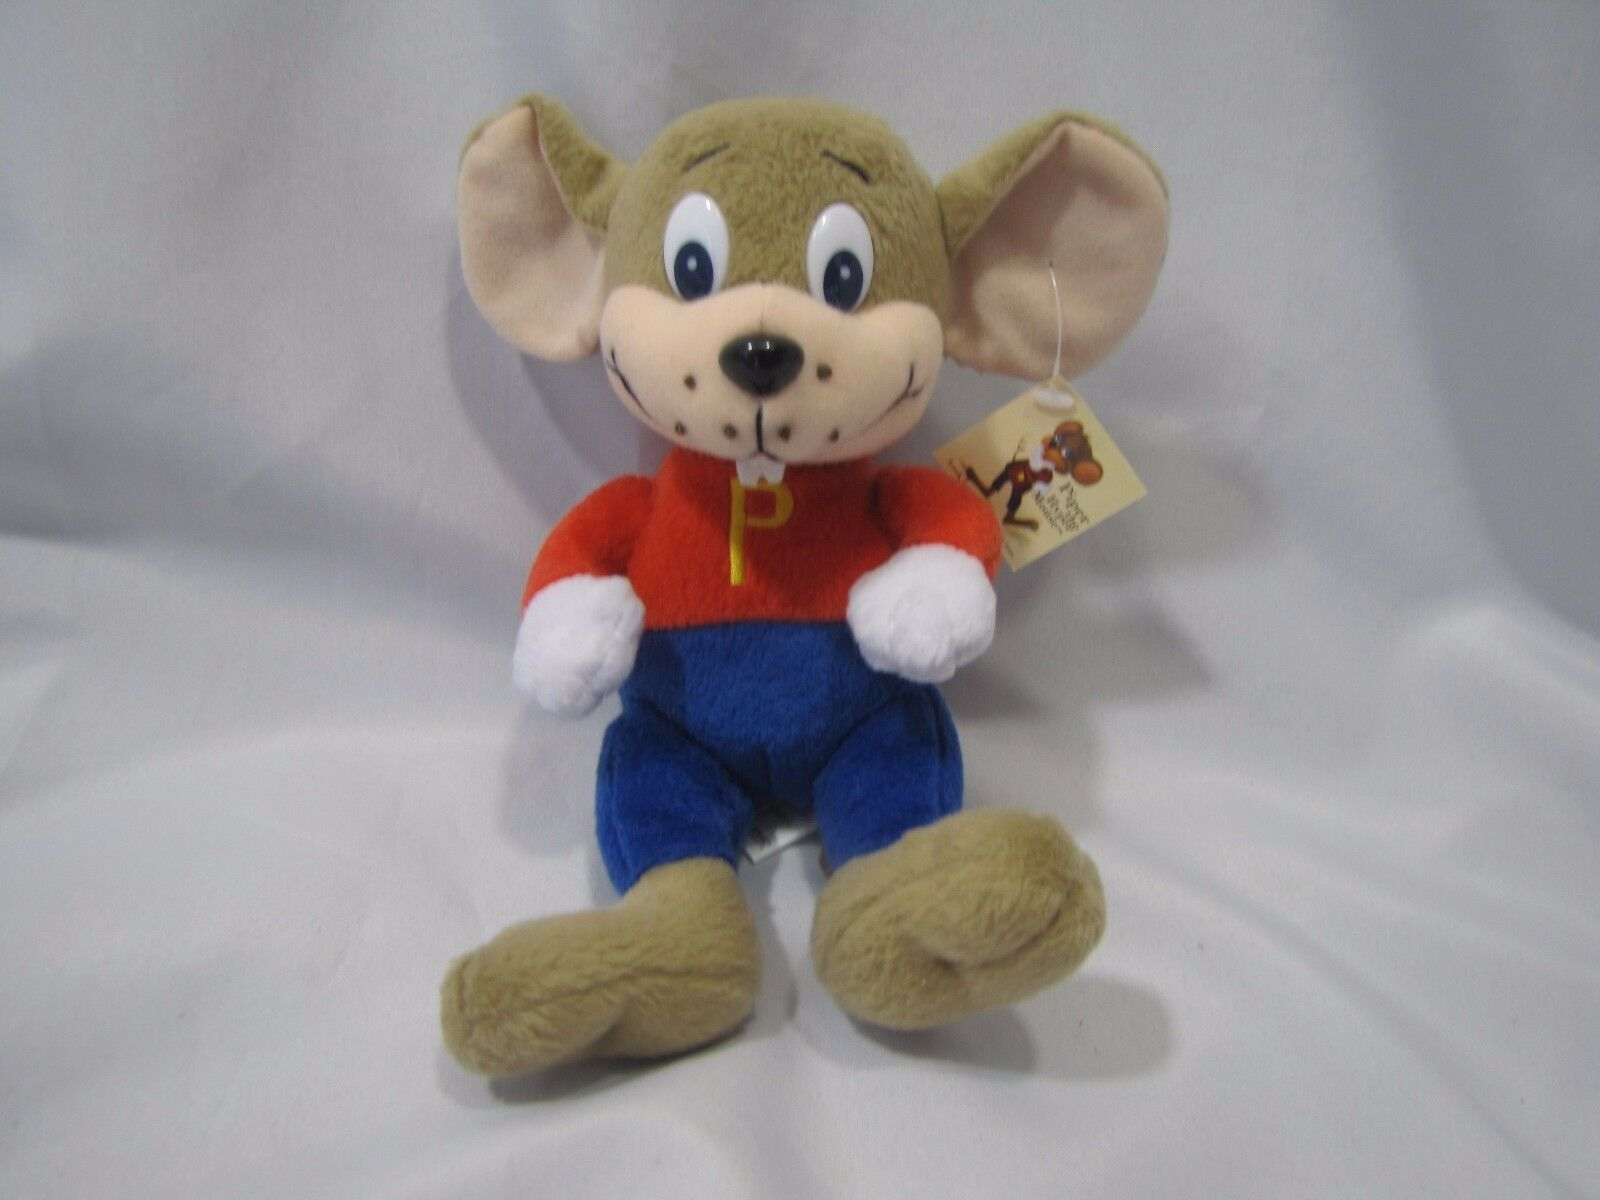 PIPER THE HYPER PLUSH MOUSE STUFFED BEAN BAG TOY MARK MARK MARK LOWRY BOOK CHARACTER DOLL 5be